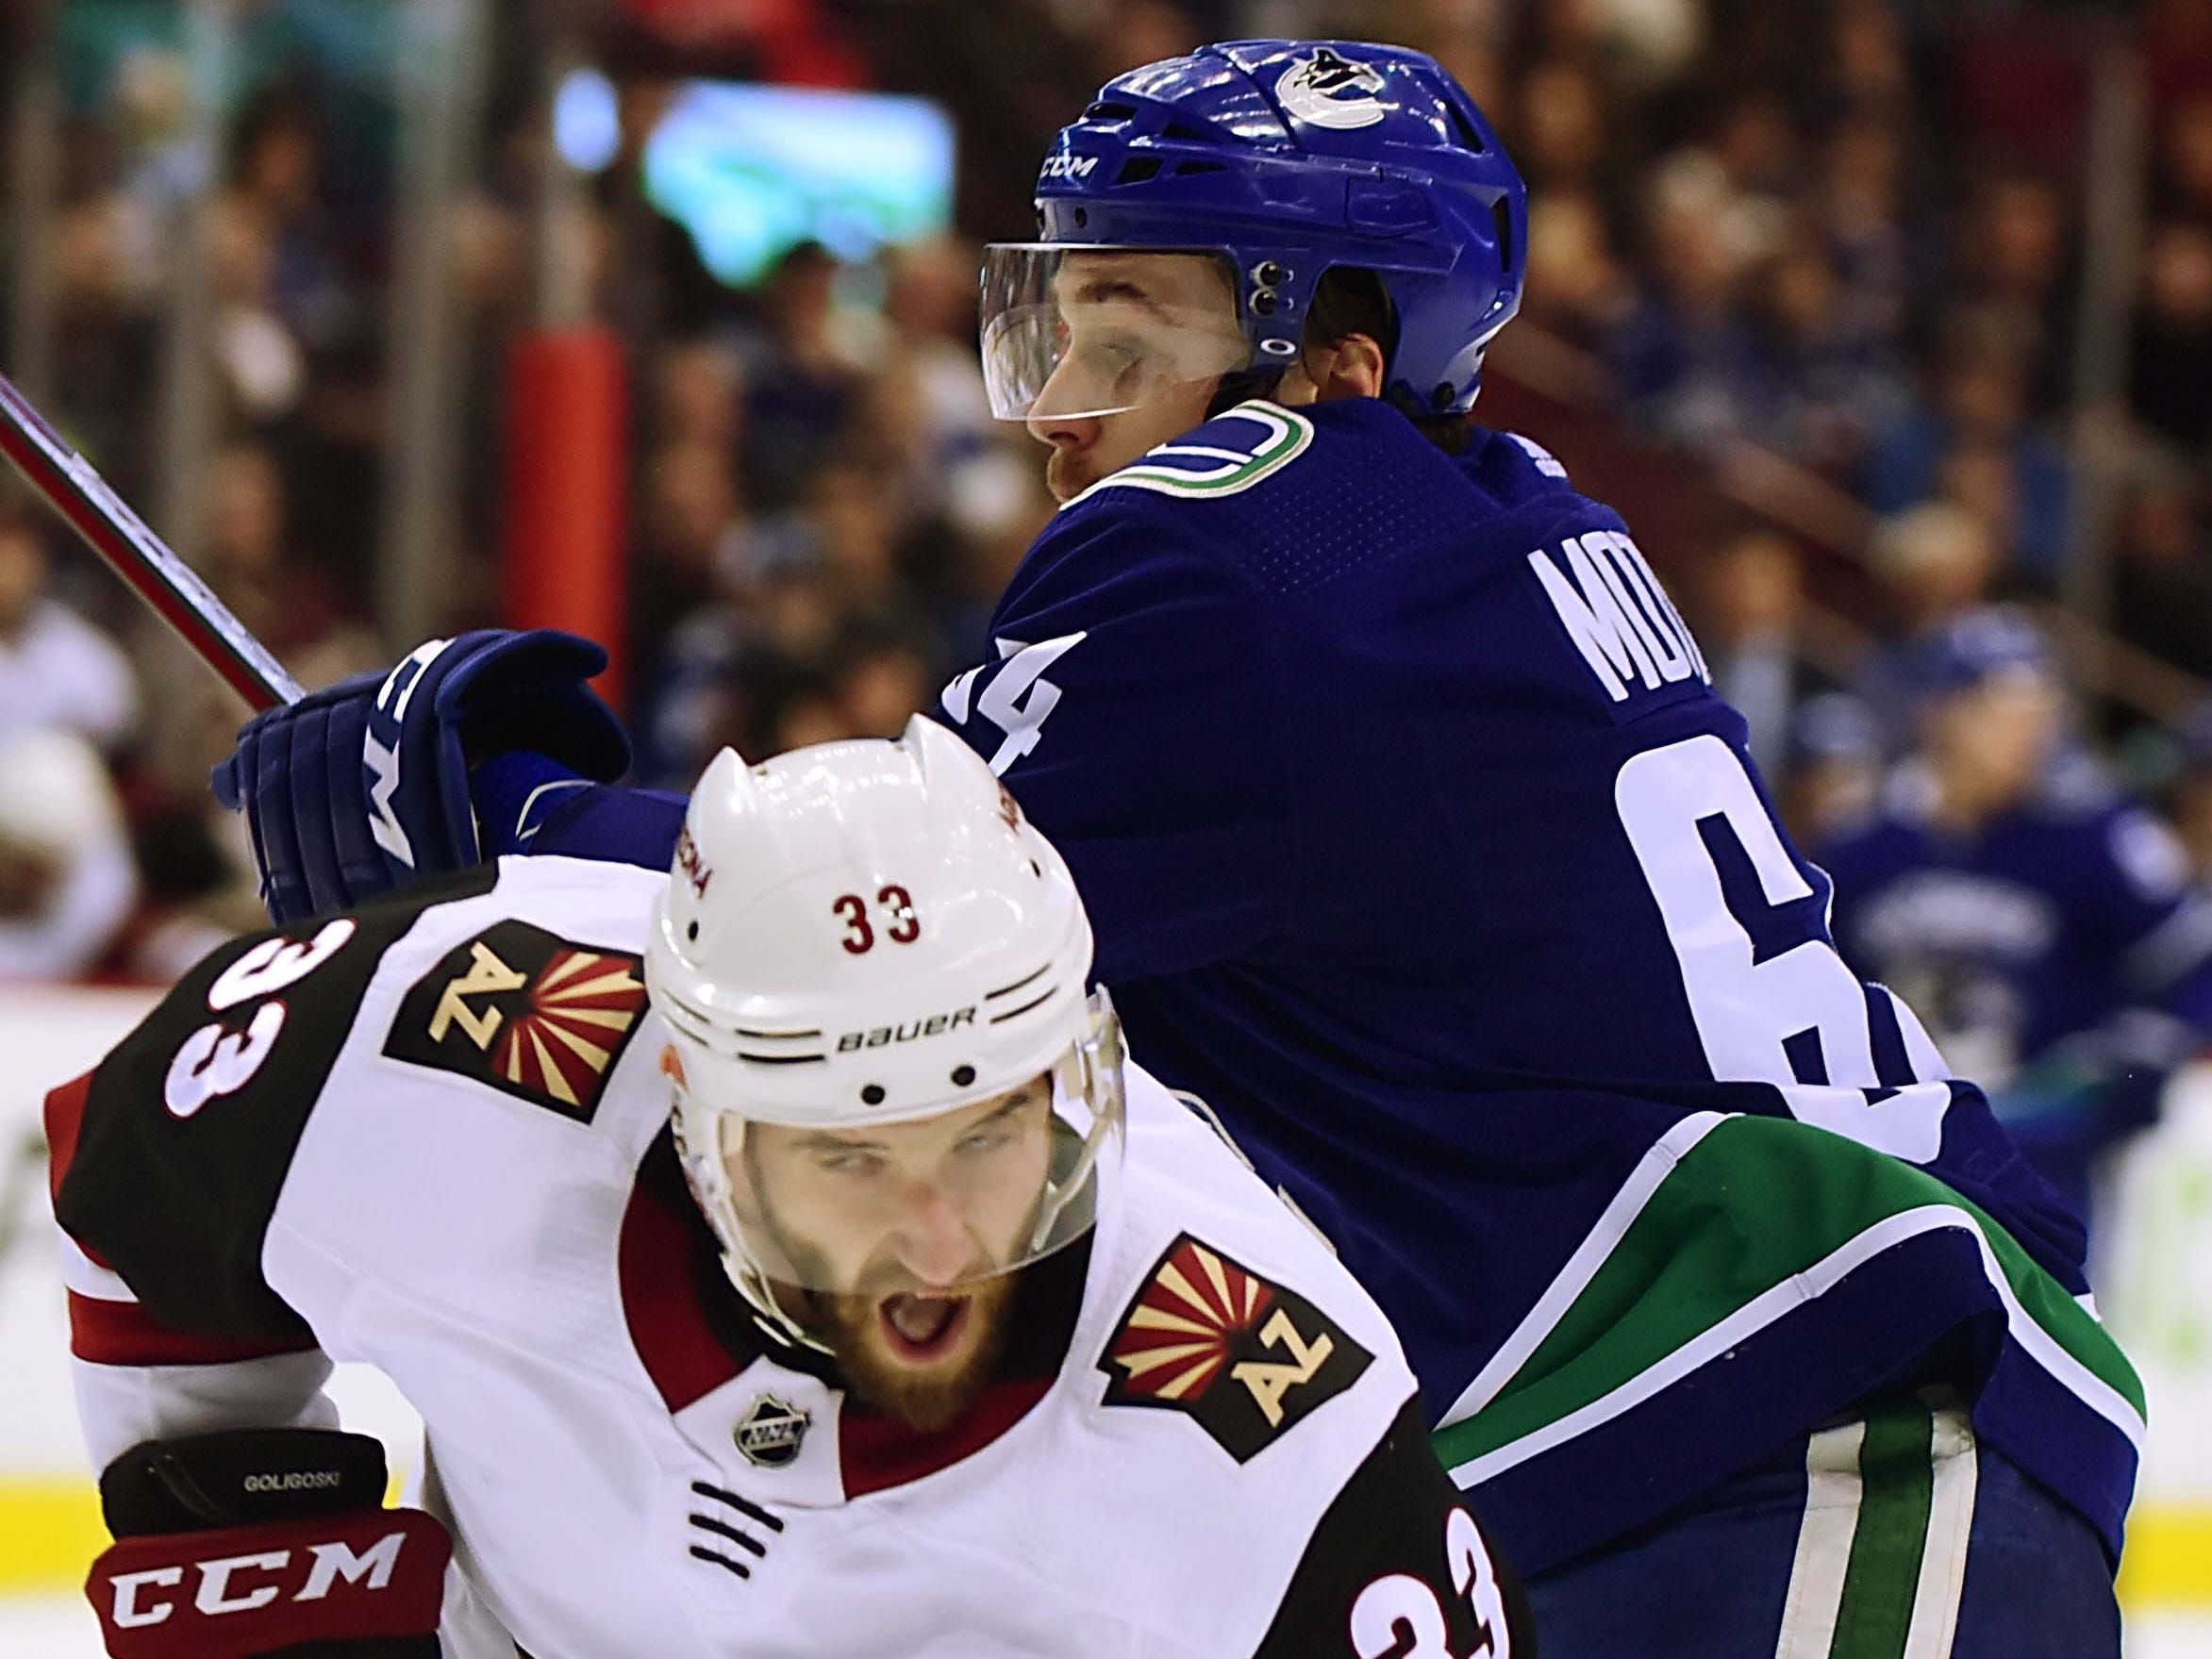 Jan 10, 2019; Vancouver, British Columbia, CAN;  Arizona Coyotes defenseman Alex Goligoski (33) defends against Vancouver Canucks forward Tyler Motte (64) during the first period at Rogers Arena. Mandatory Credit: Anne-Marie Sorvin-USA TODAY Sports